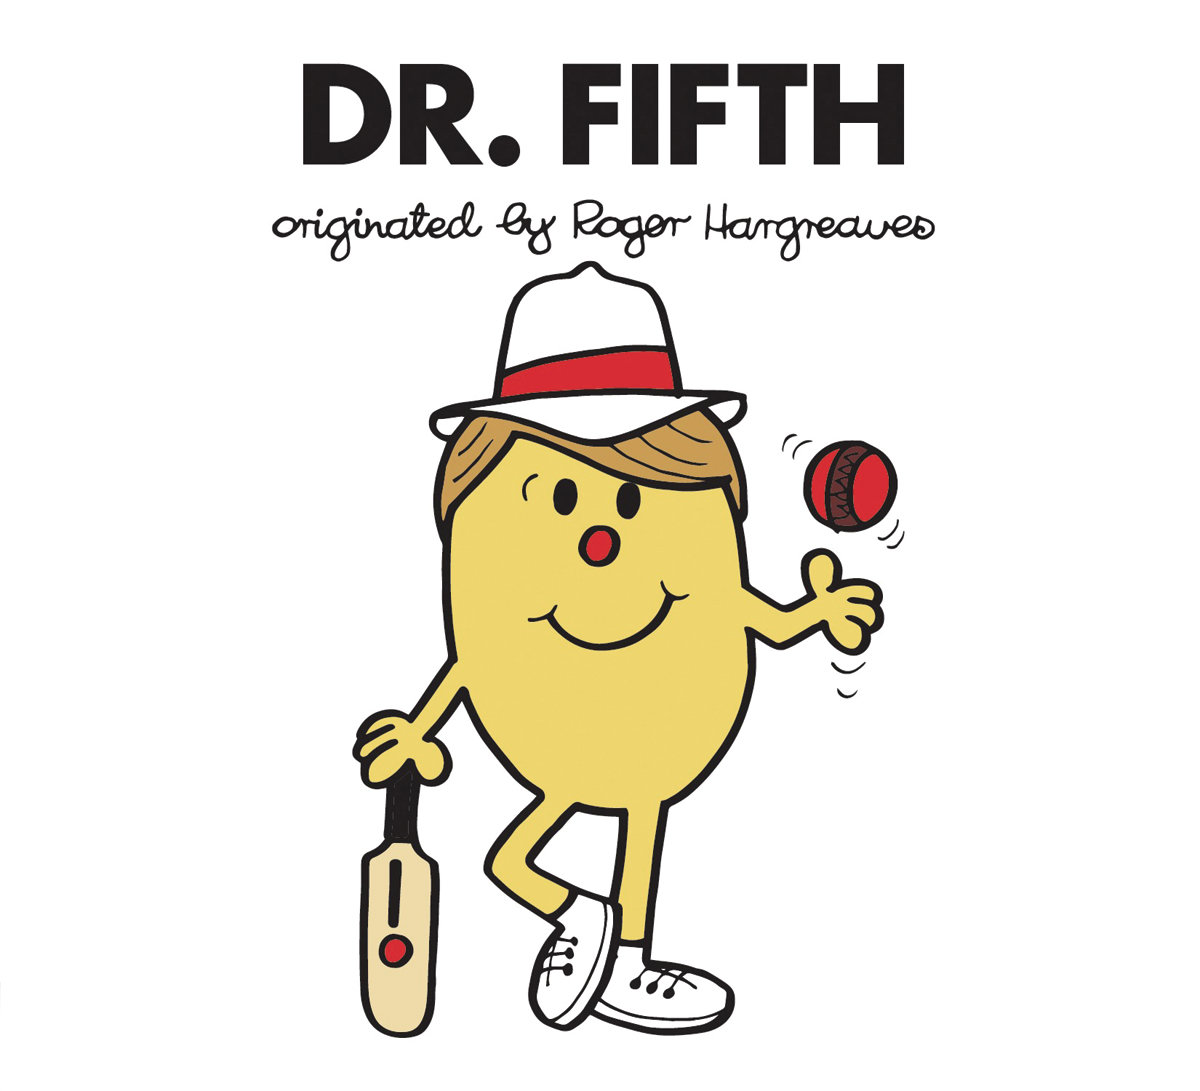 DR FIFTH